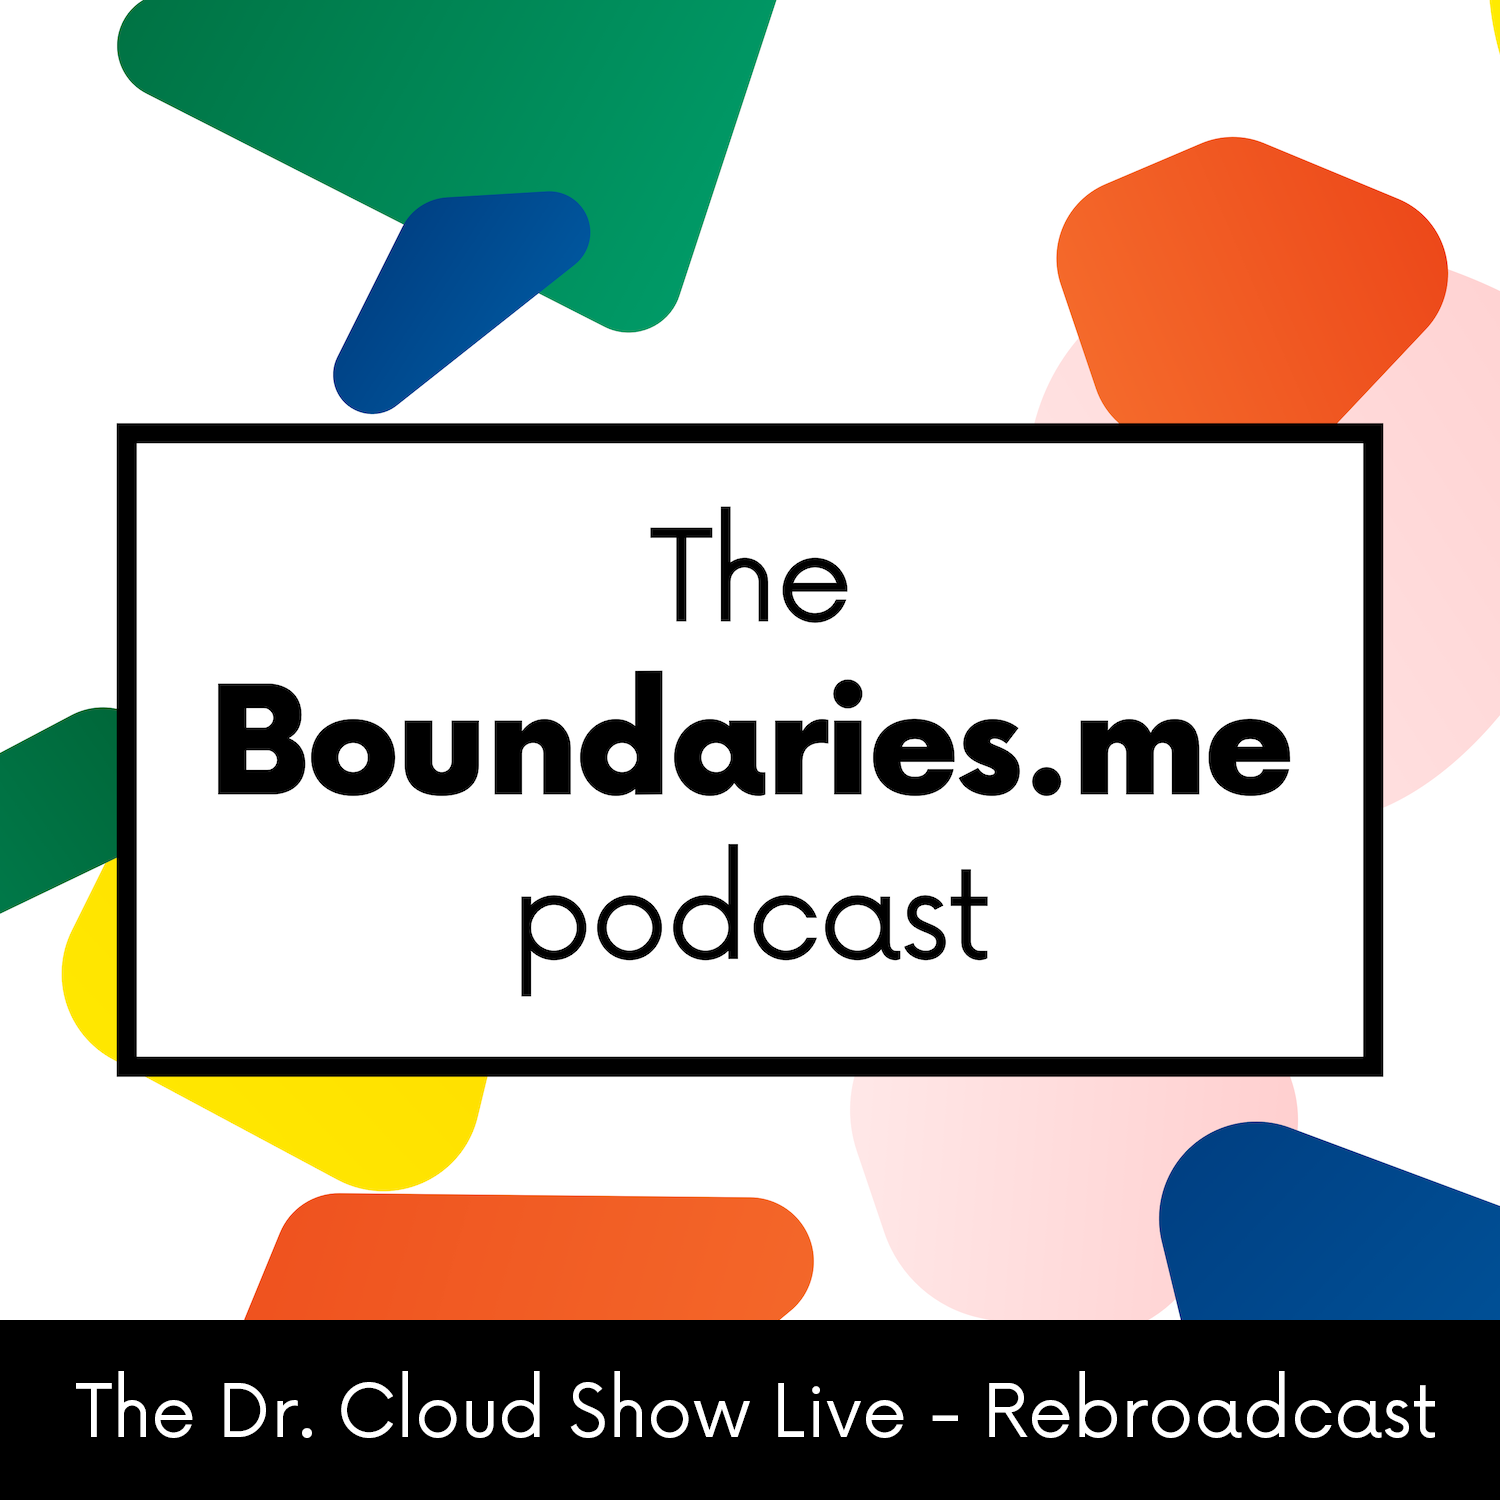 Episode 31 - The Dr. Cloud Show Live - Neuroplasticity and Rewiring Your Brain